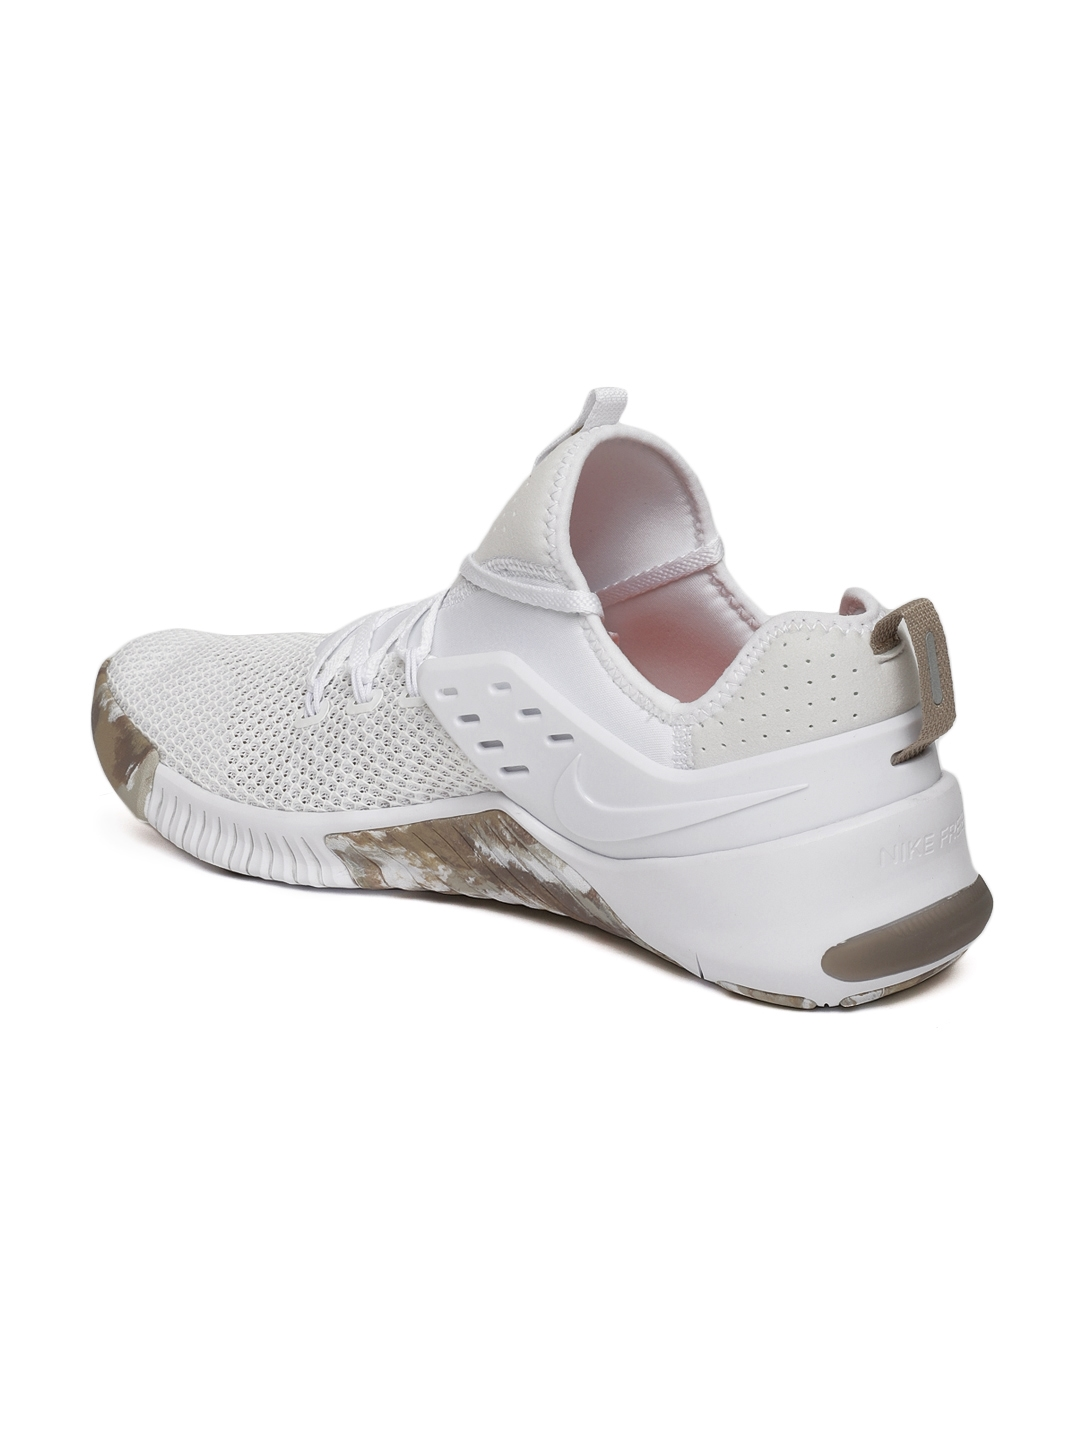 bbcea7e4e0af3 Buy Nike Men White Free Metcon Training Shoes - Sports Shoes for Men ...